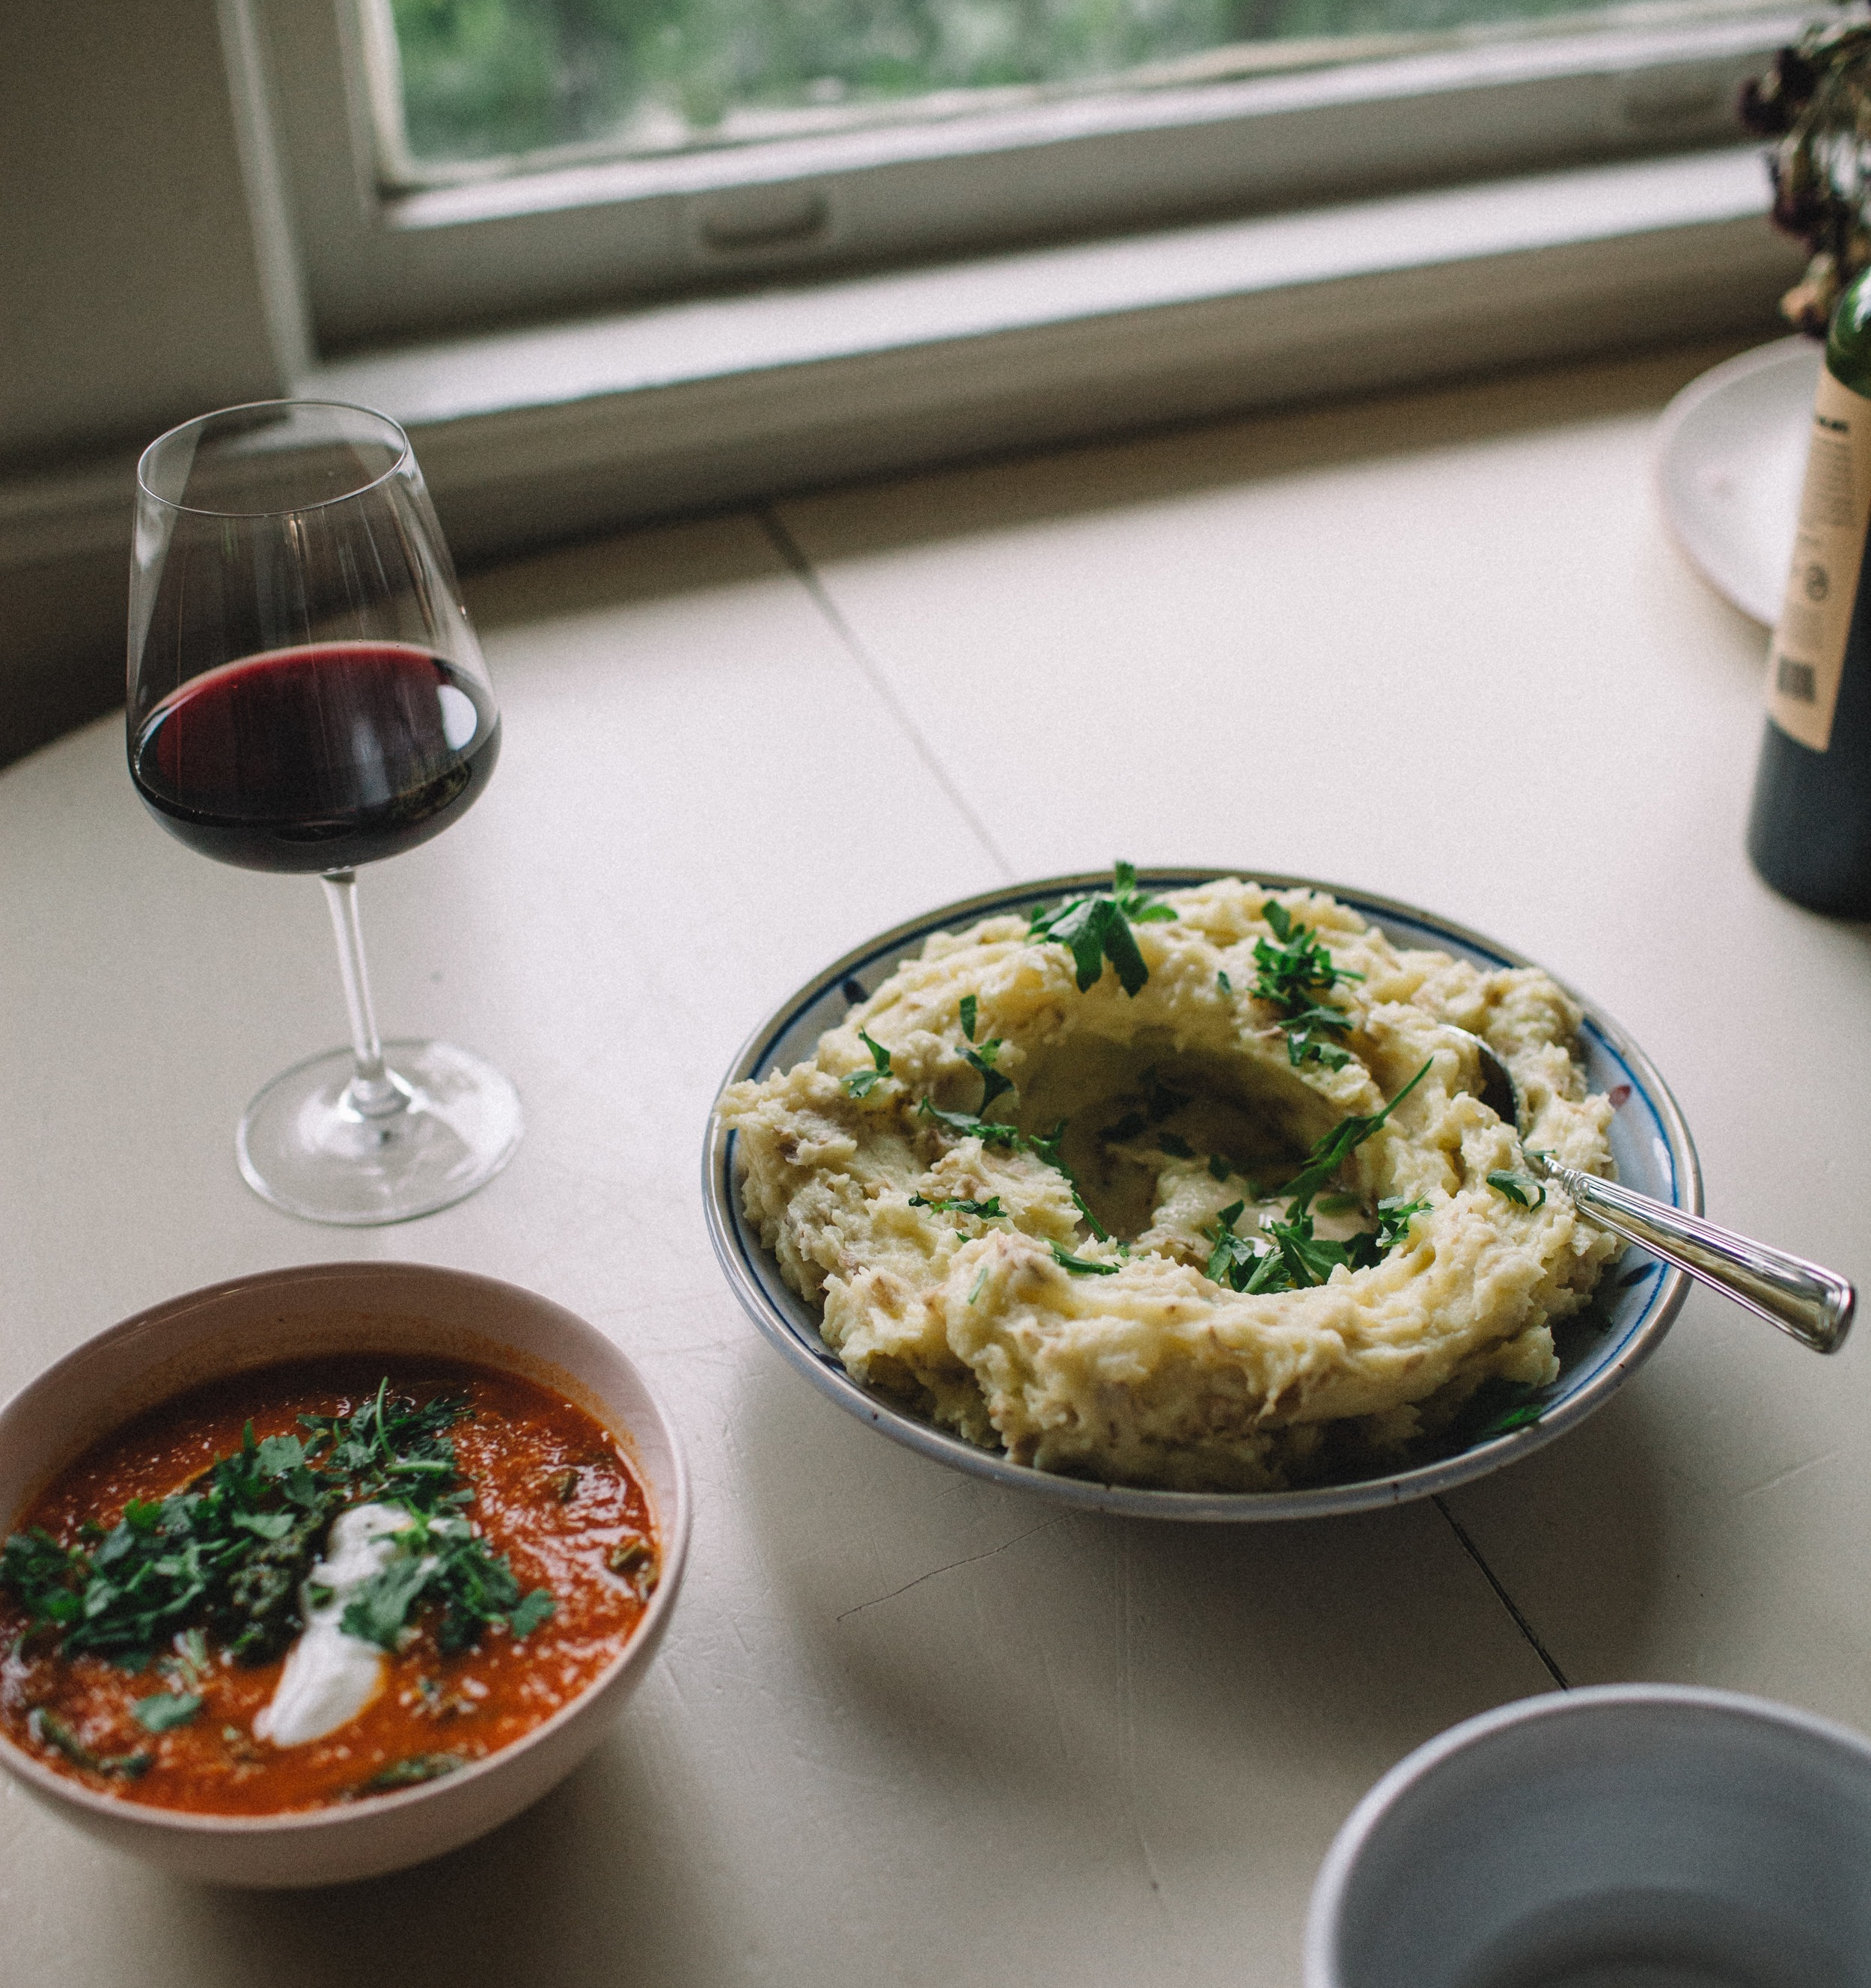 mashed potatoes with parsley + butter | marina gunn